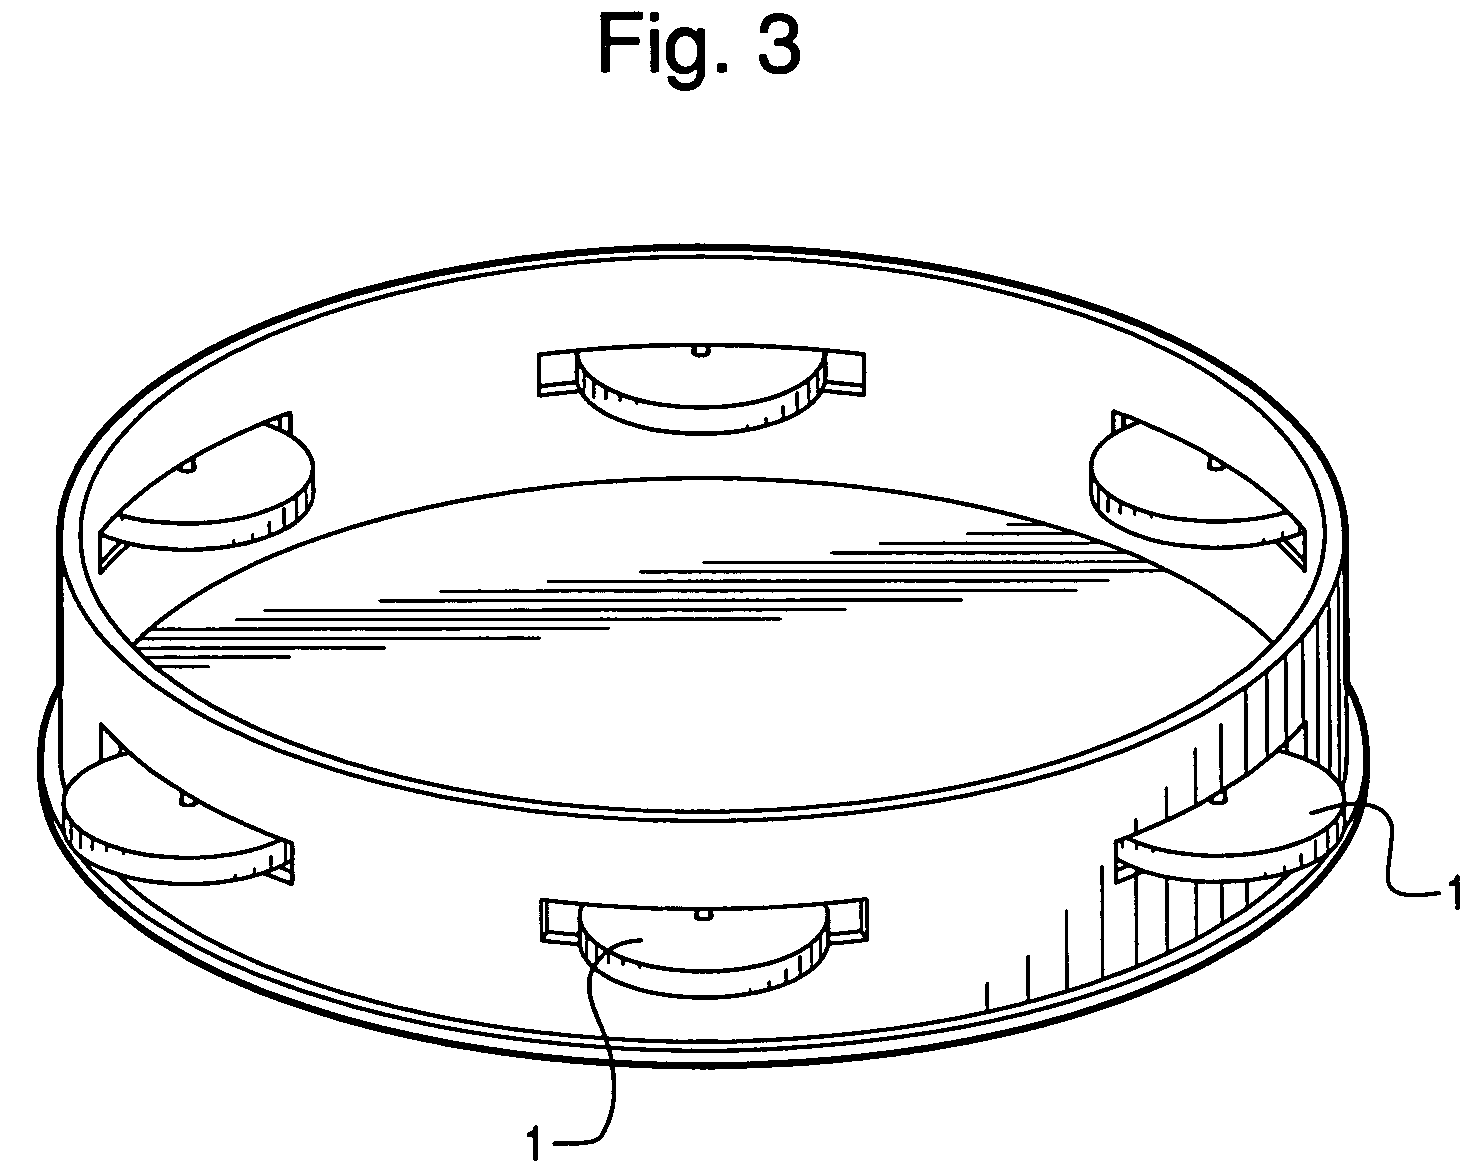 Drawn instrument percussion instrument Patent Patent Patents Musical US7470845